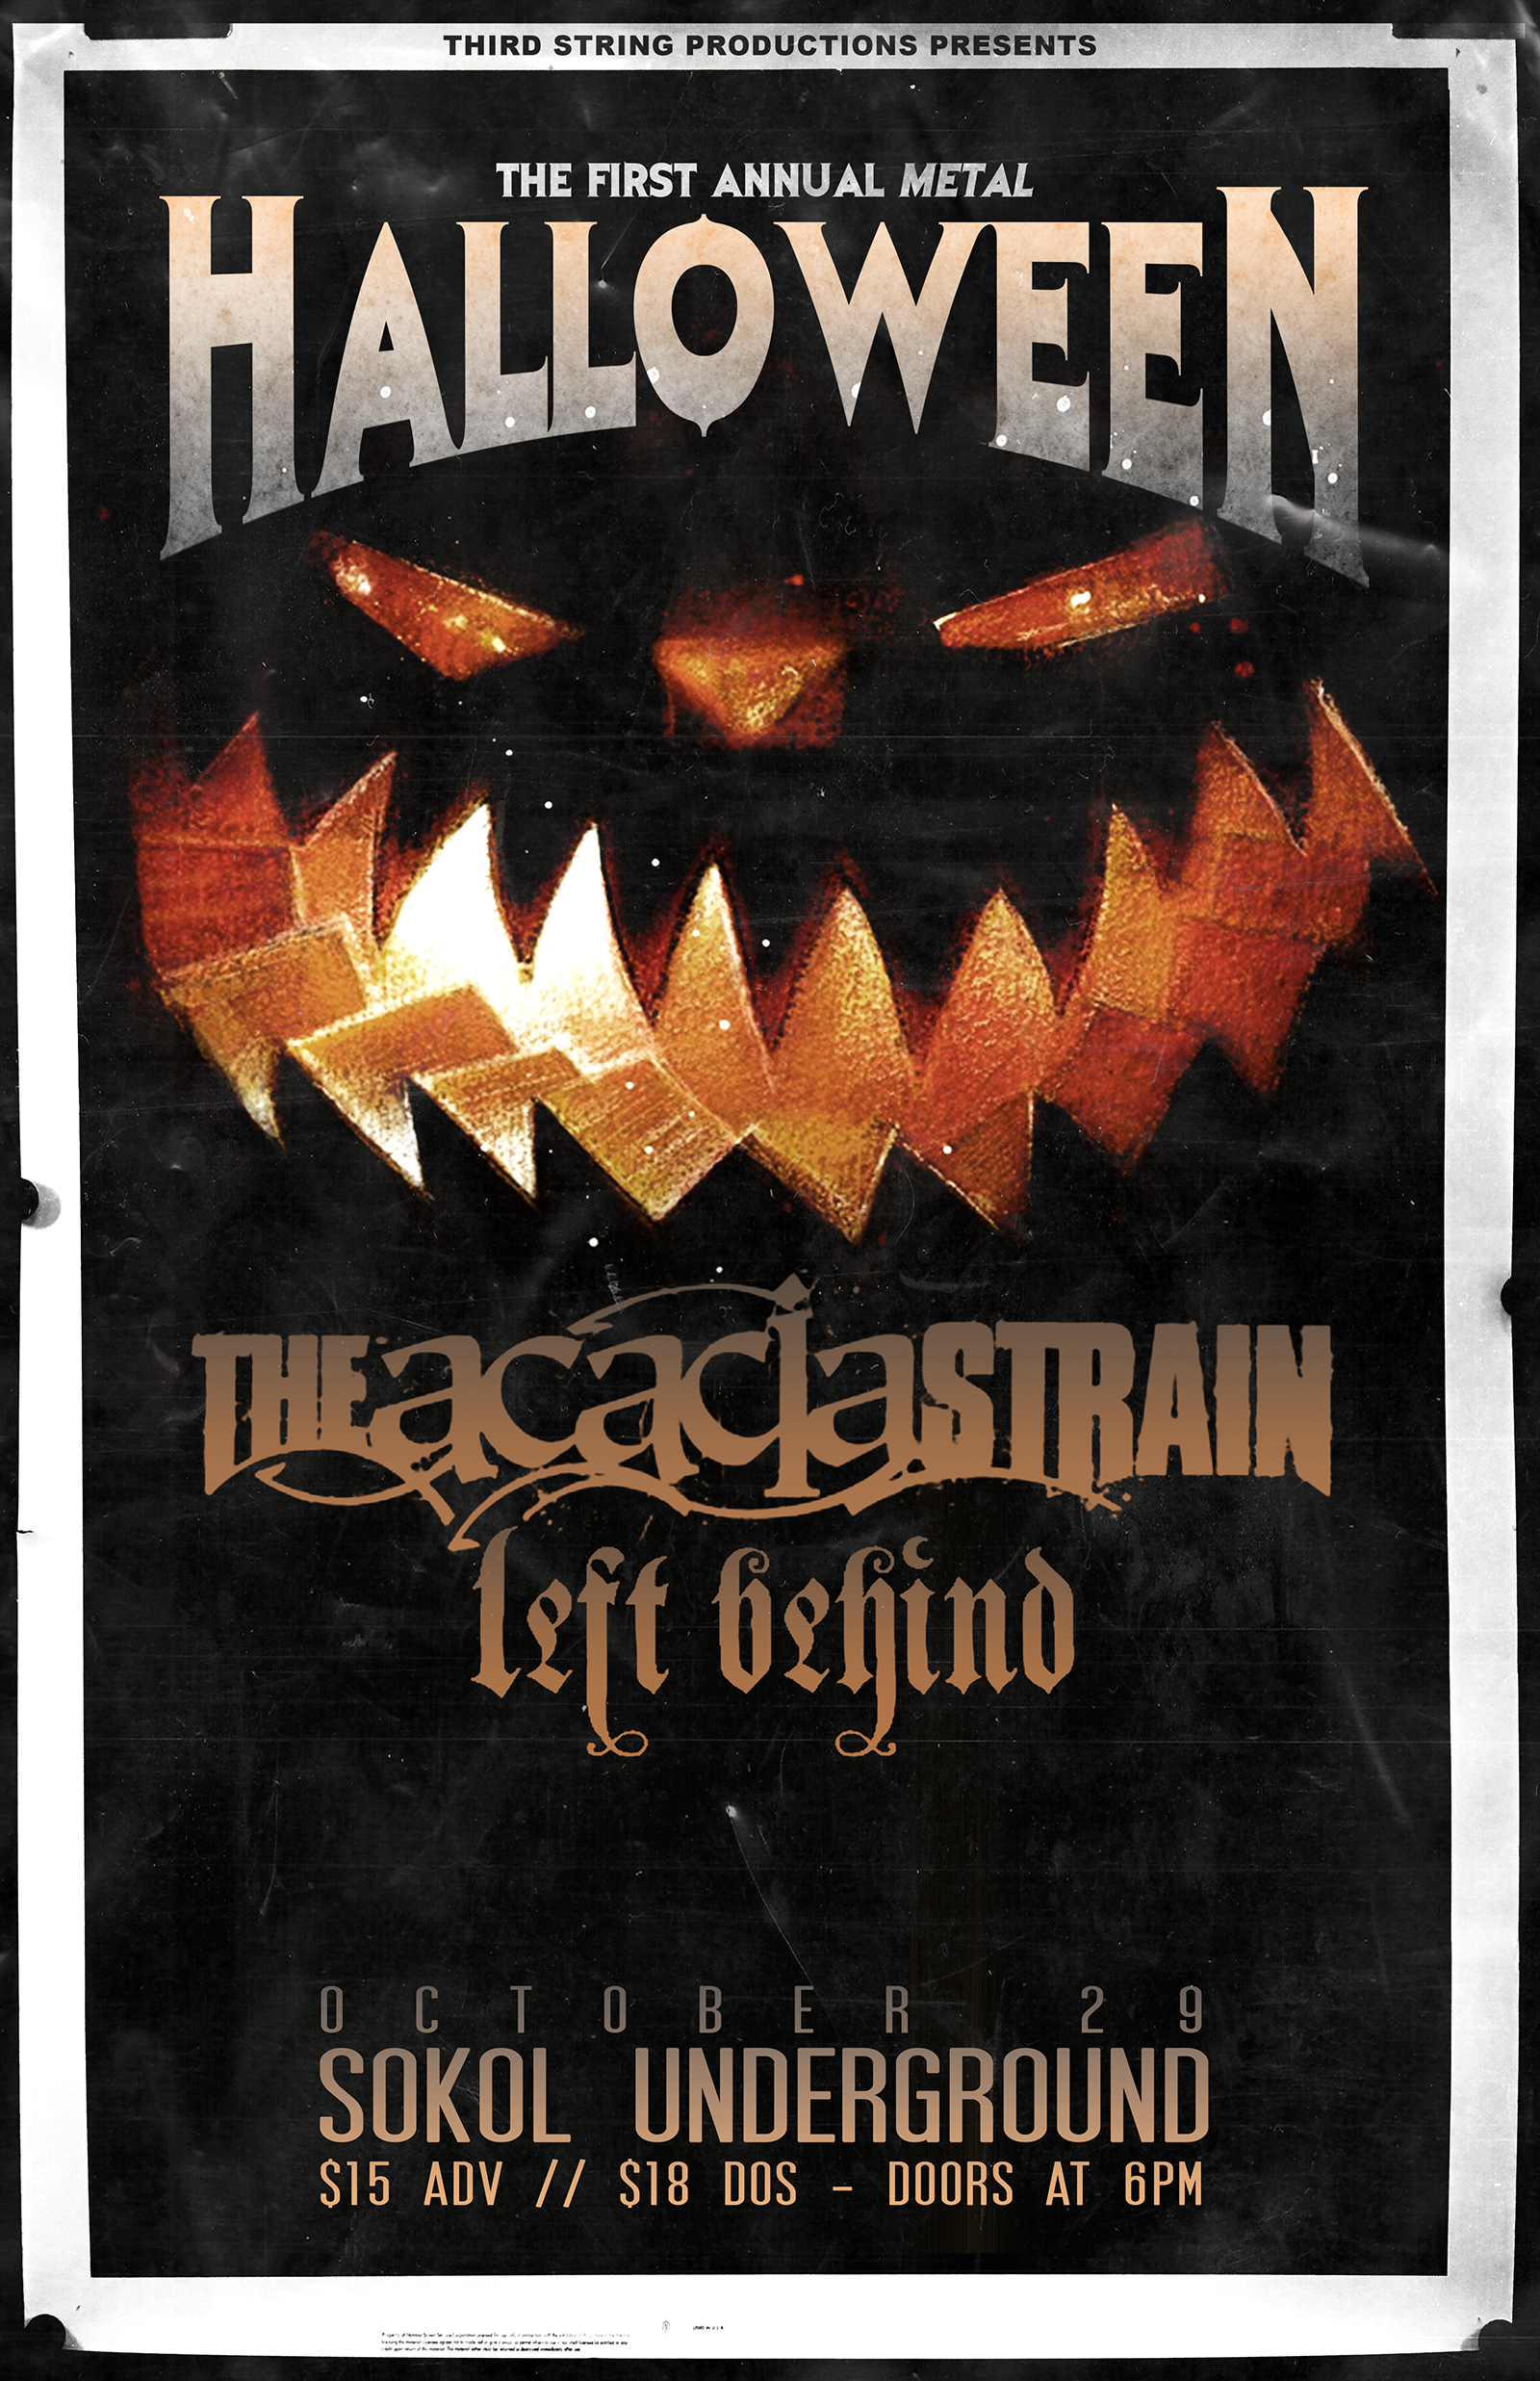 THIRD STRING HALLOWEEN PARTY: The Acacia Strain + MORE